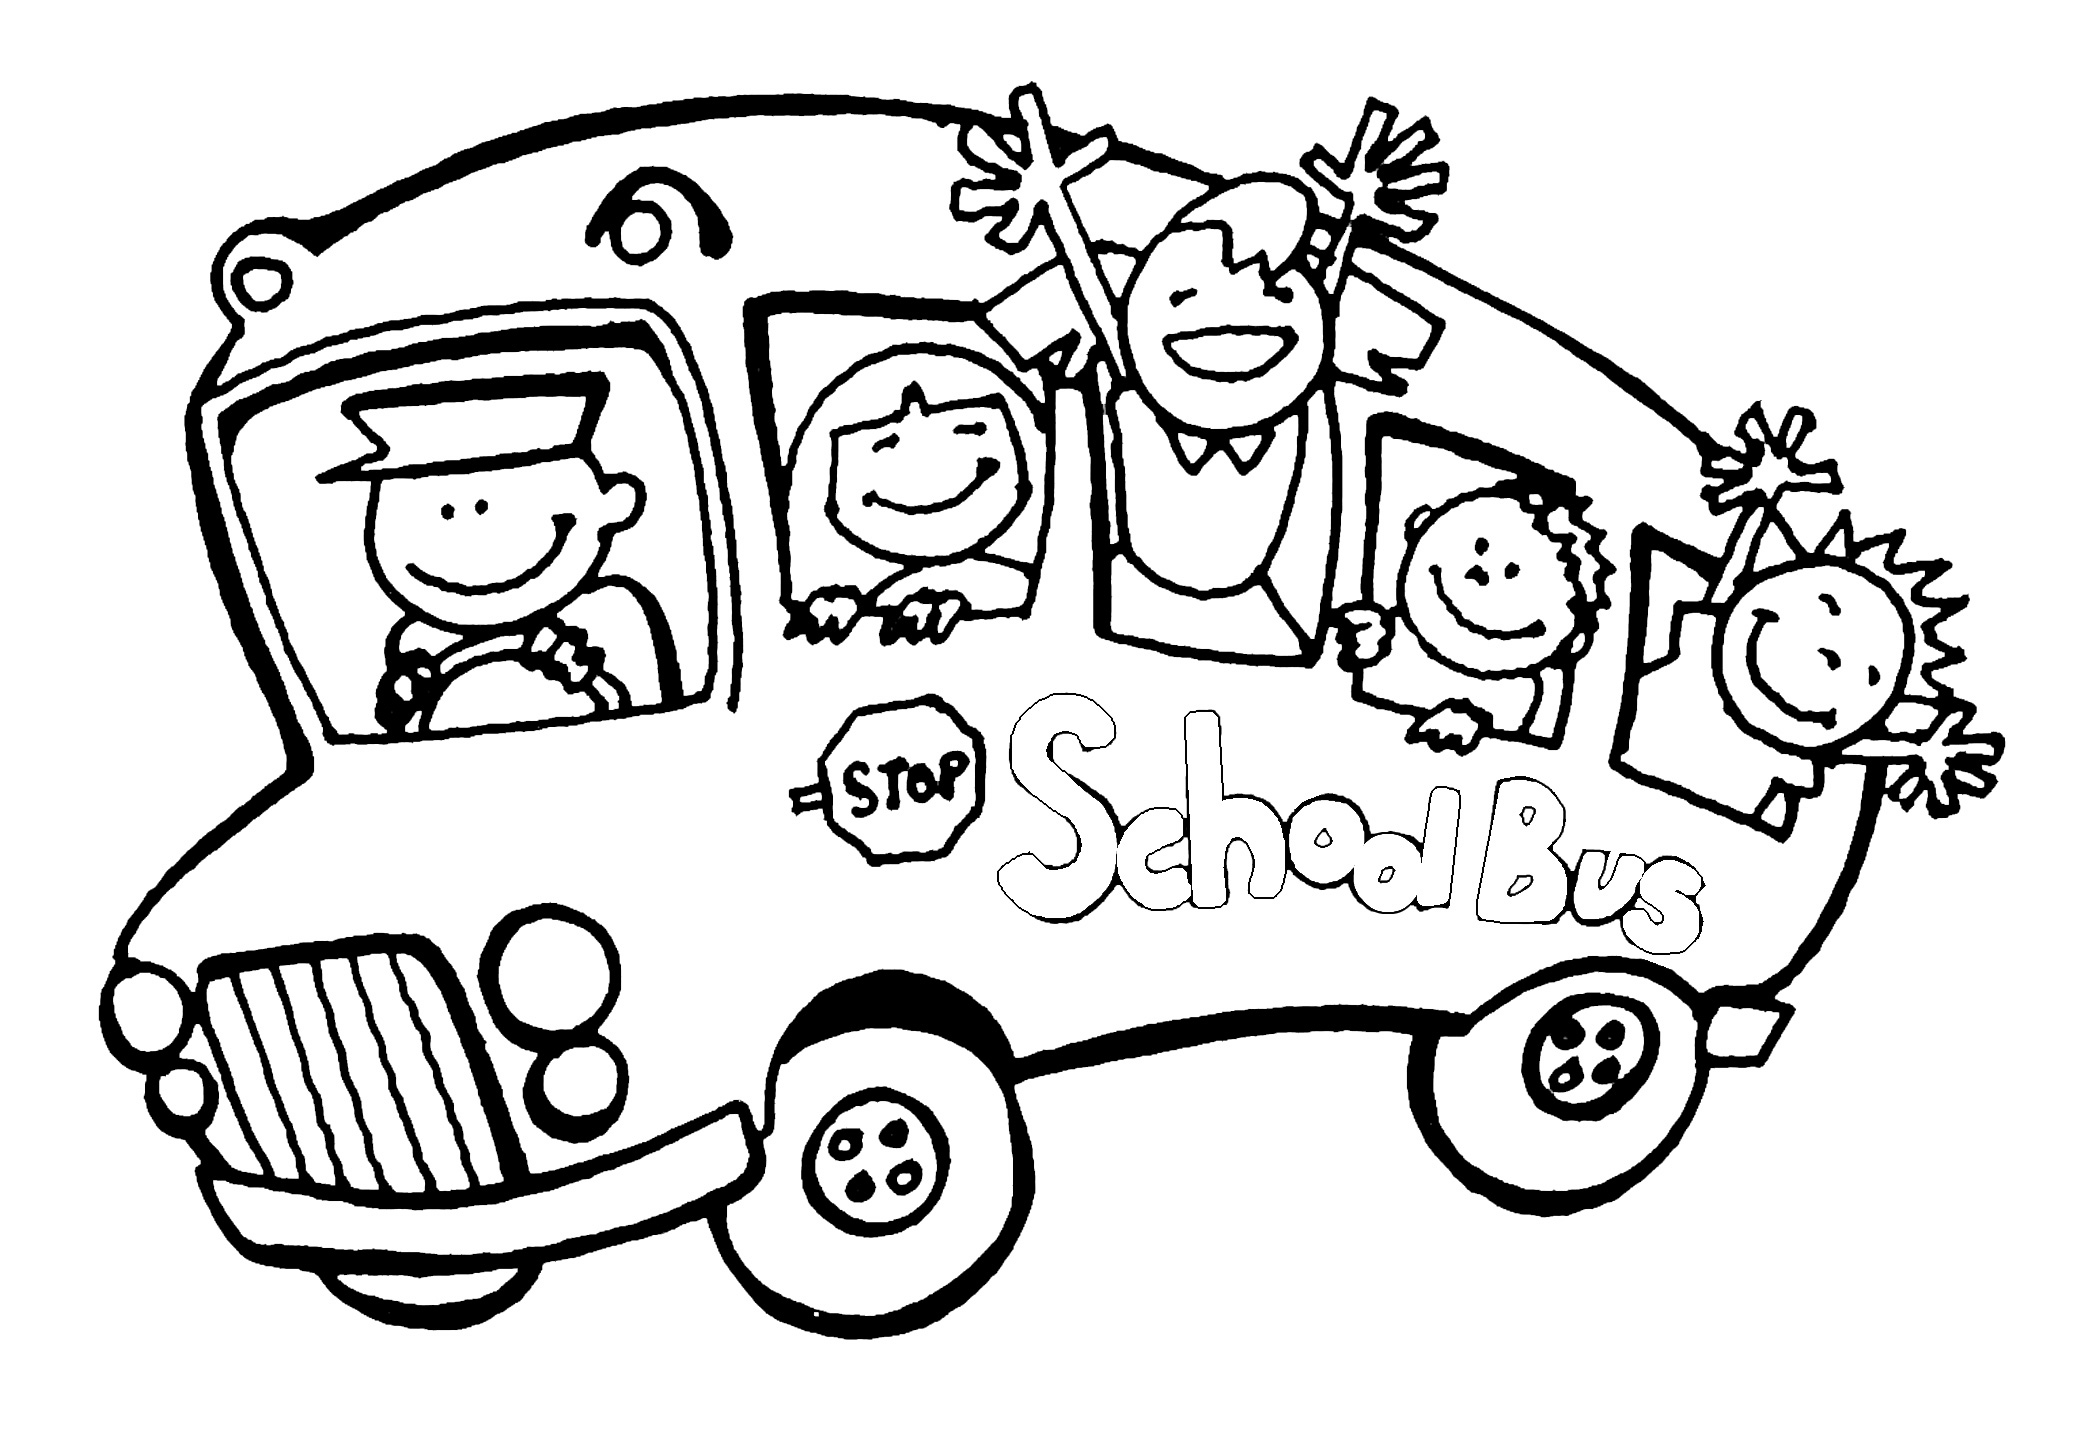 Kindergarten Coloring Sheets 03 Sheri Sarton Gallery Of Back to School Coloring Pages for Kindergarten 1480—2168 Printable